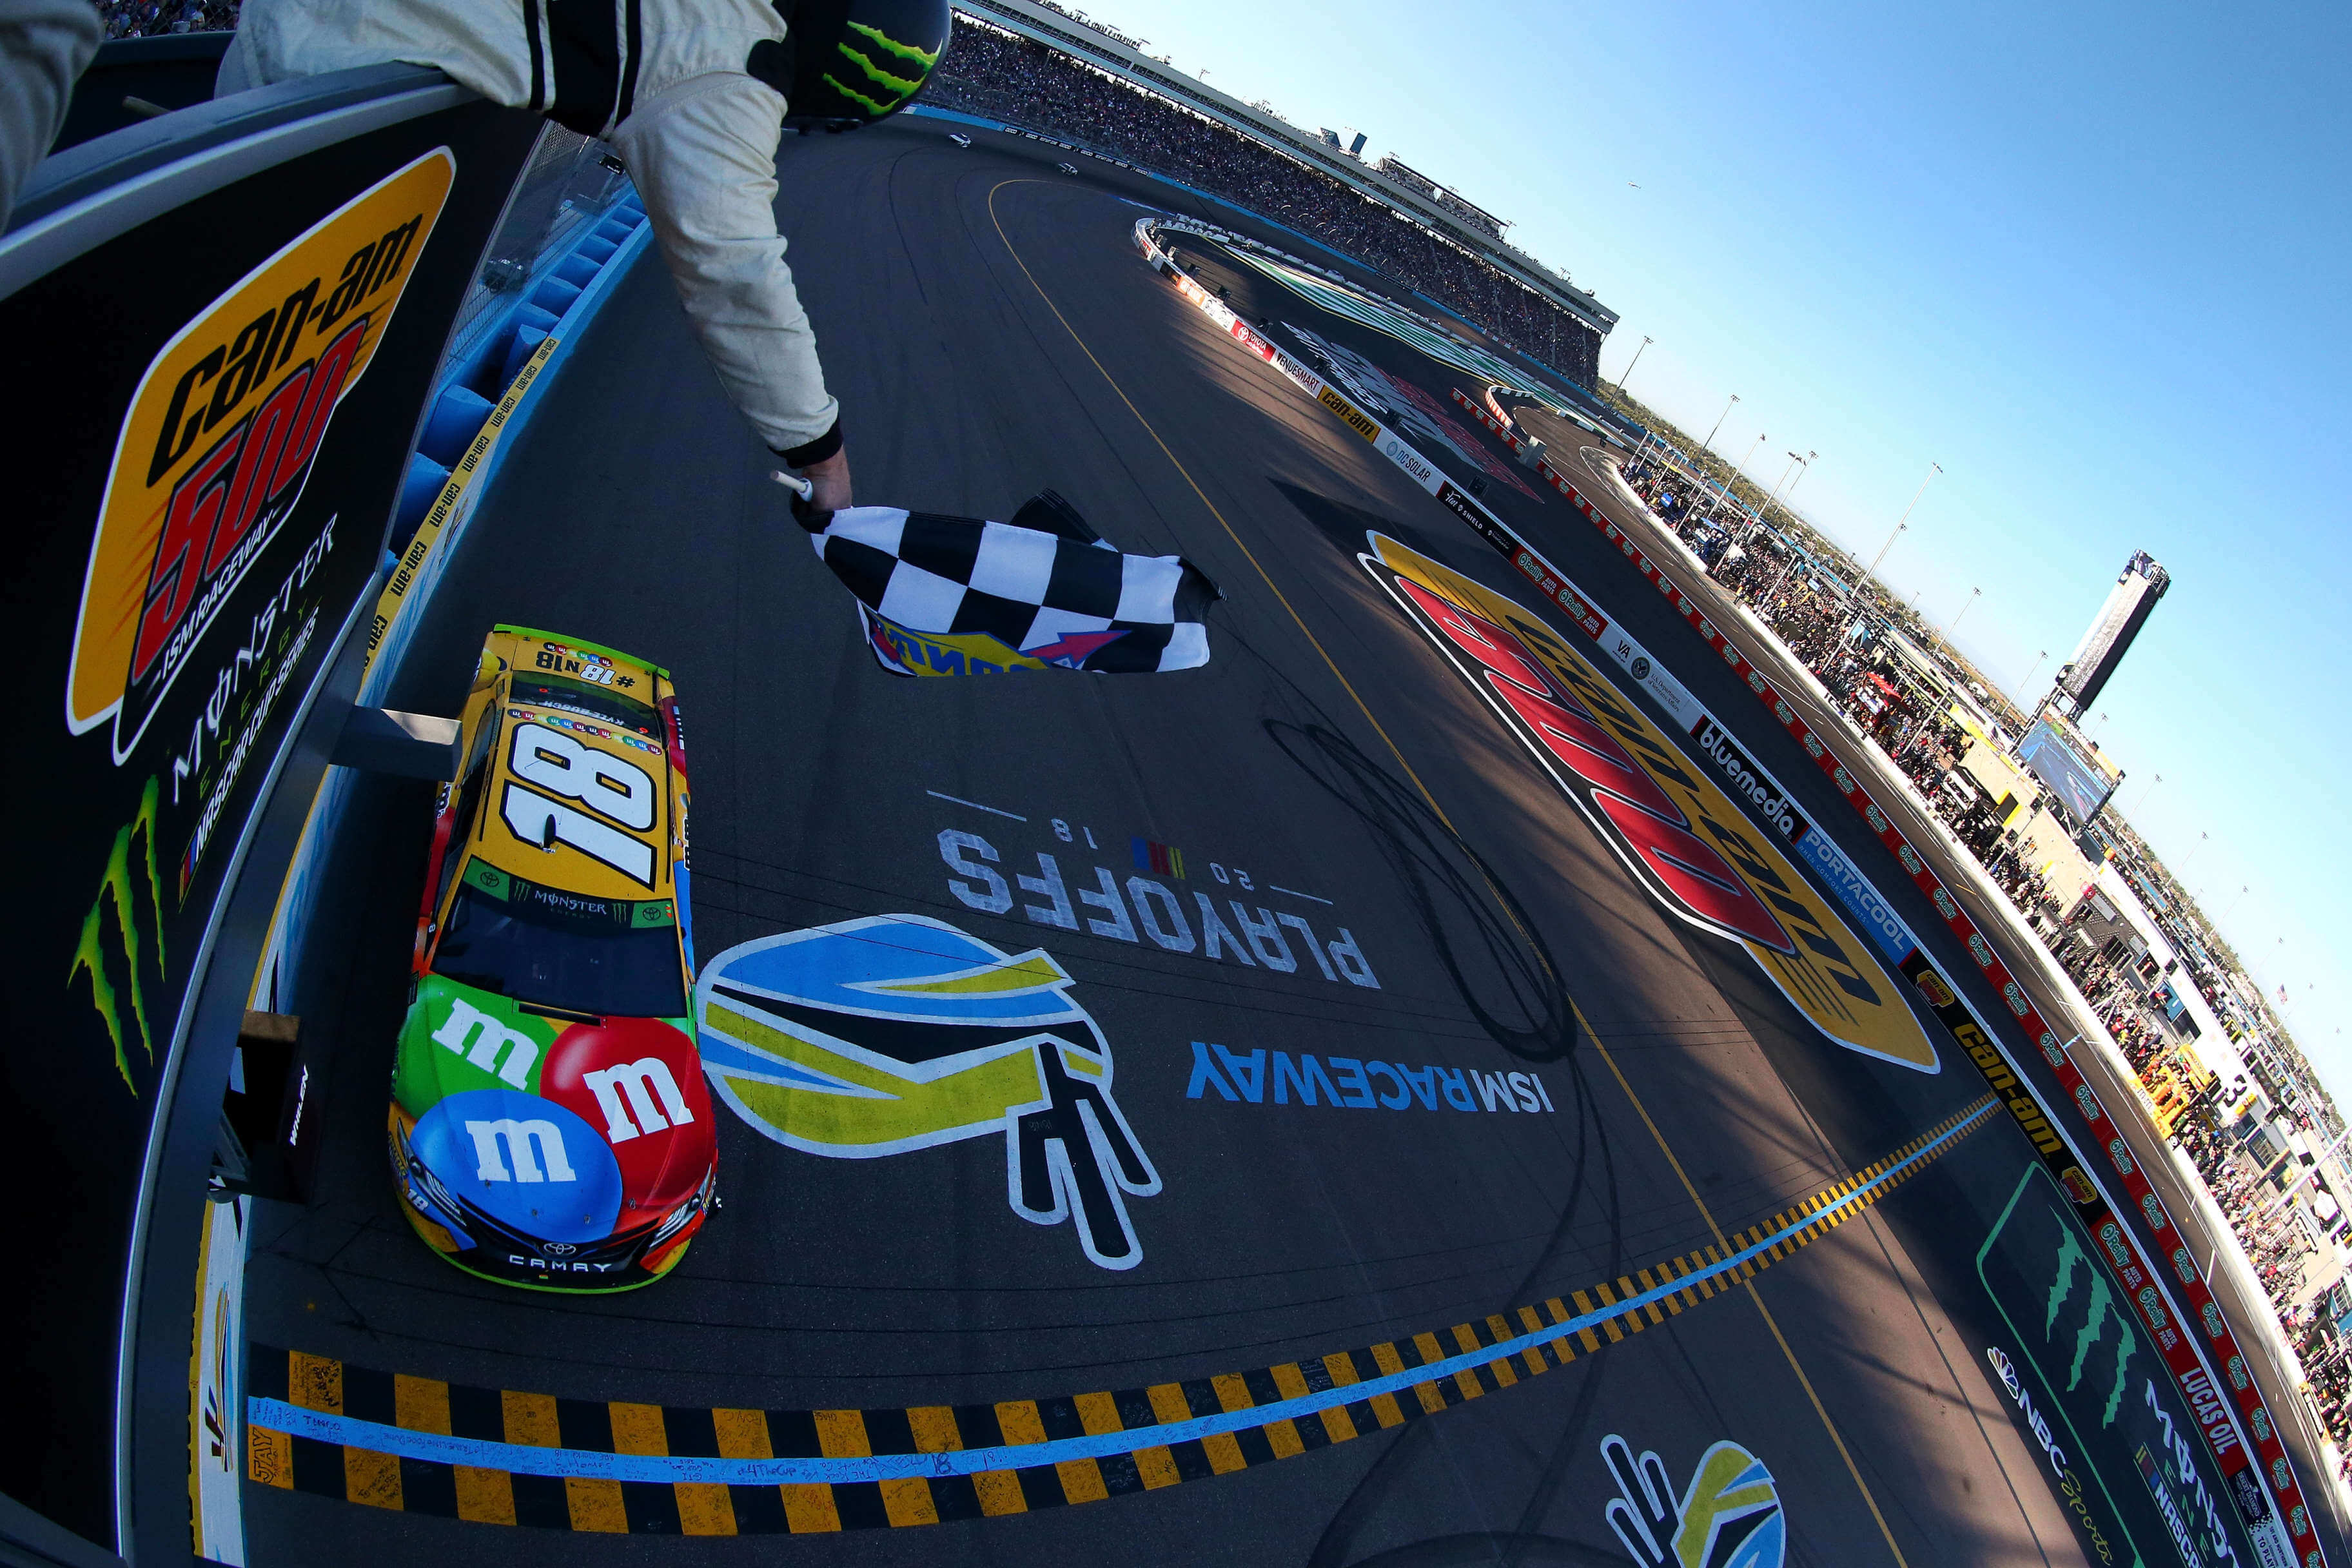 Kyle Busch wins the NASCAR race at ISM Raceway